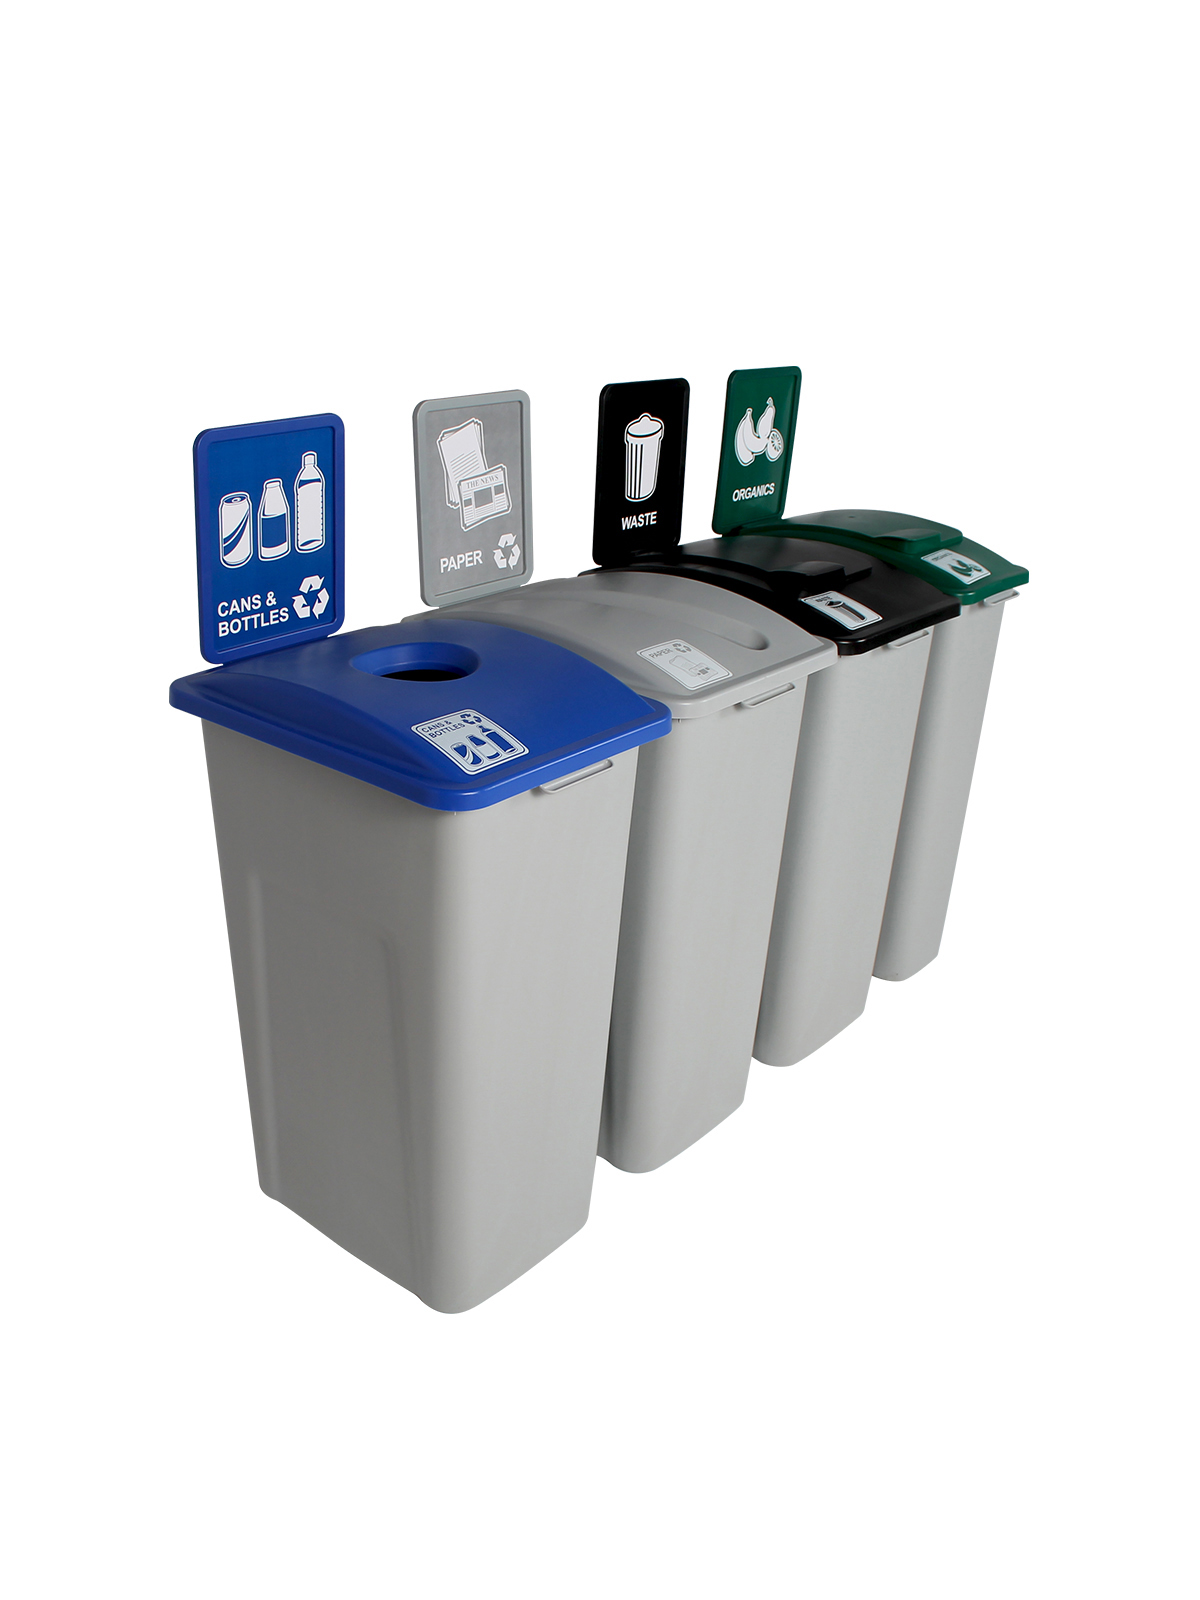 WASTE WATCHER XL - Quad - Cans & Bottles-Paper-Organics-Waste - Circle-Slot-Solid Lift-Solid Lift - Grey-Blue-Grey-Green-Black